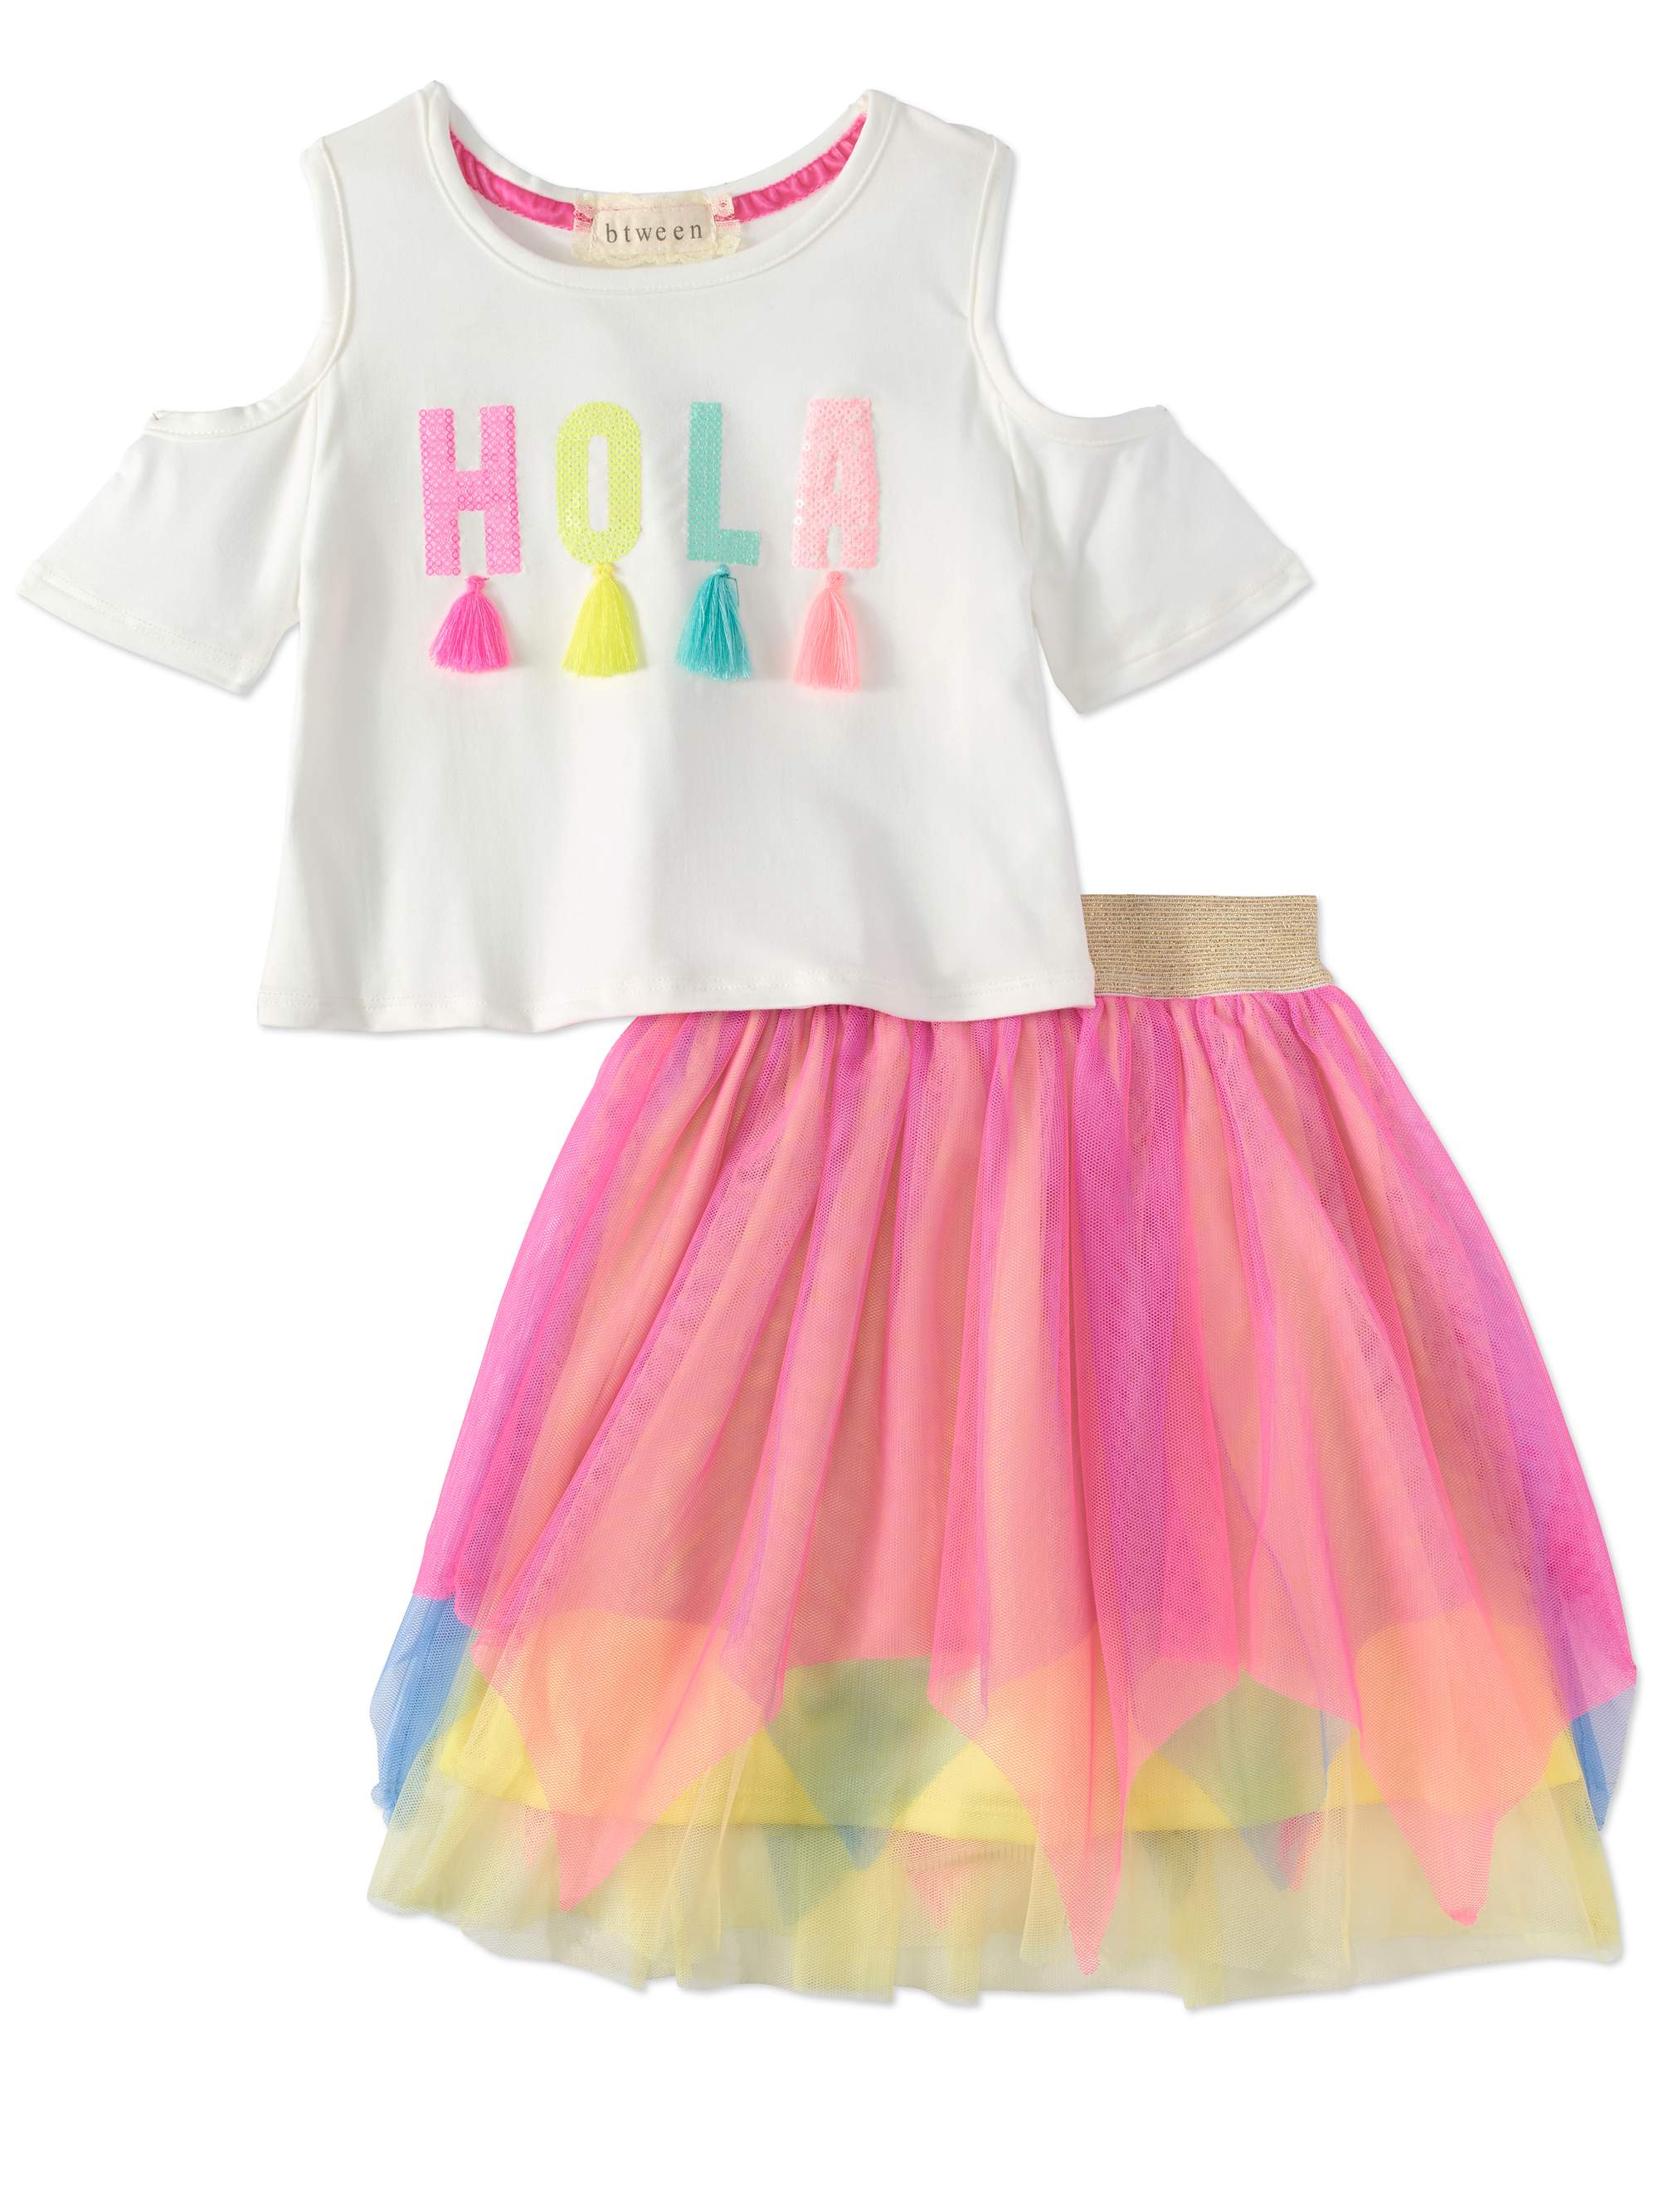 Hola Tassel Cold Shoulder Tee and Mesh Skirt, 2-Piece Outfit Set (Little Girls & Big Girls)